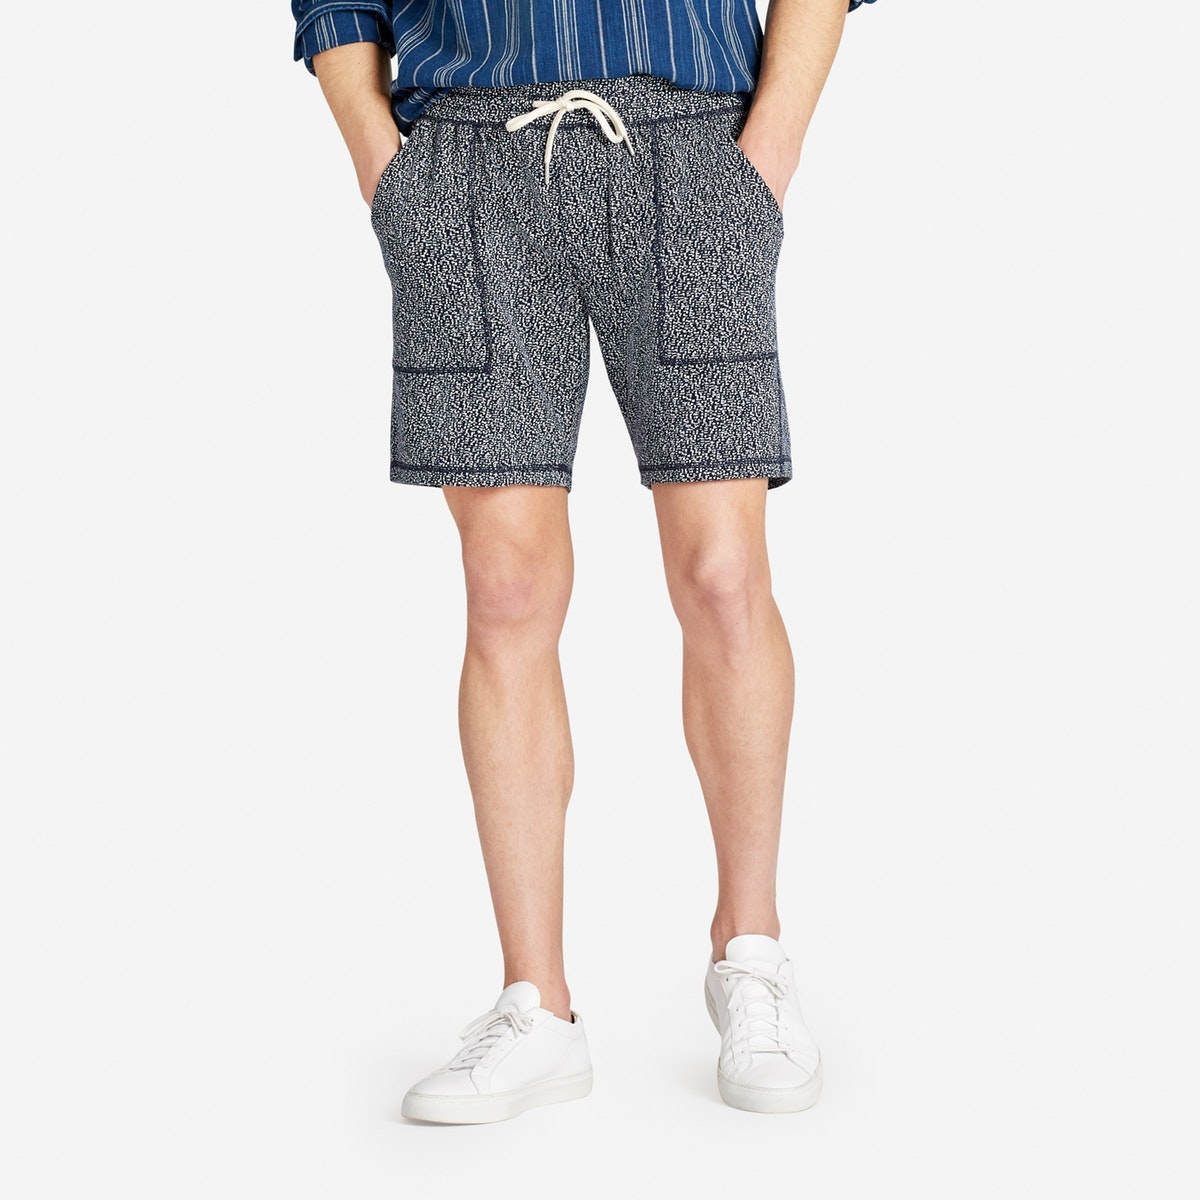 French Terry Fatigue Shorts